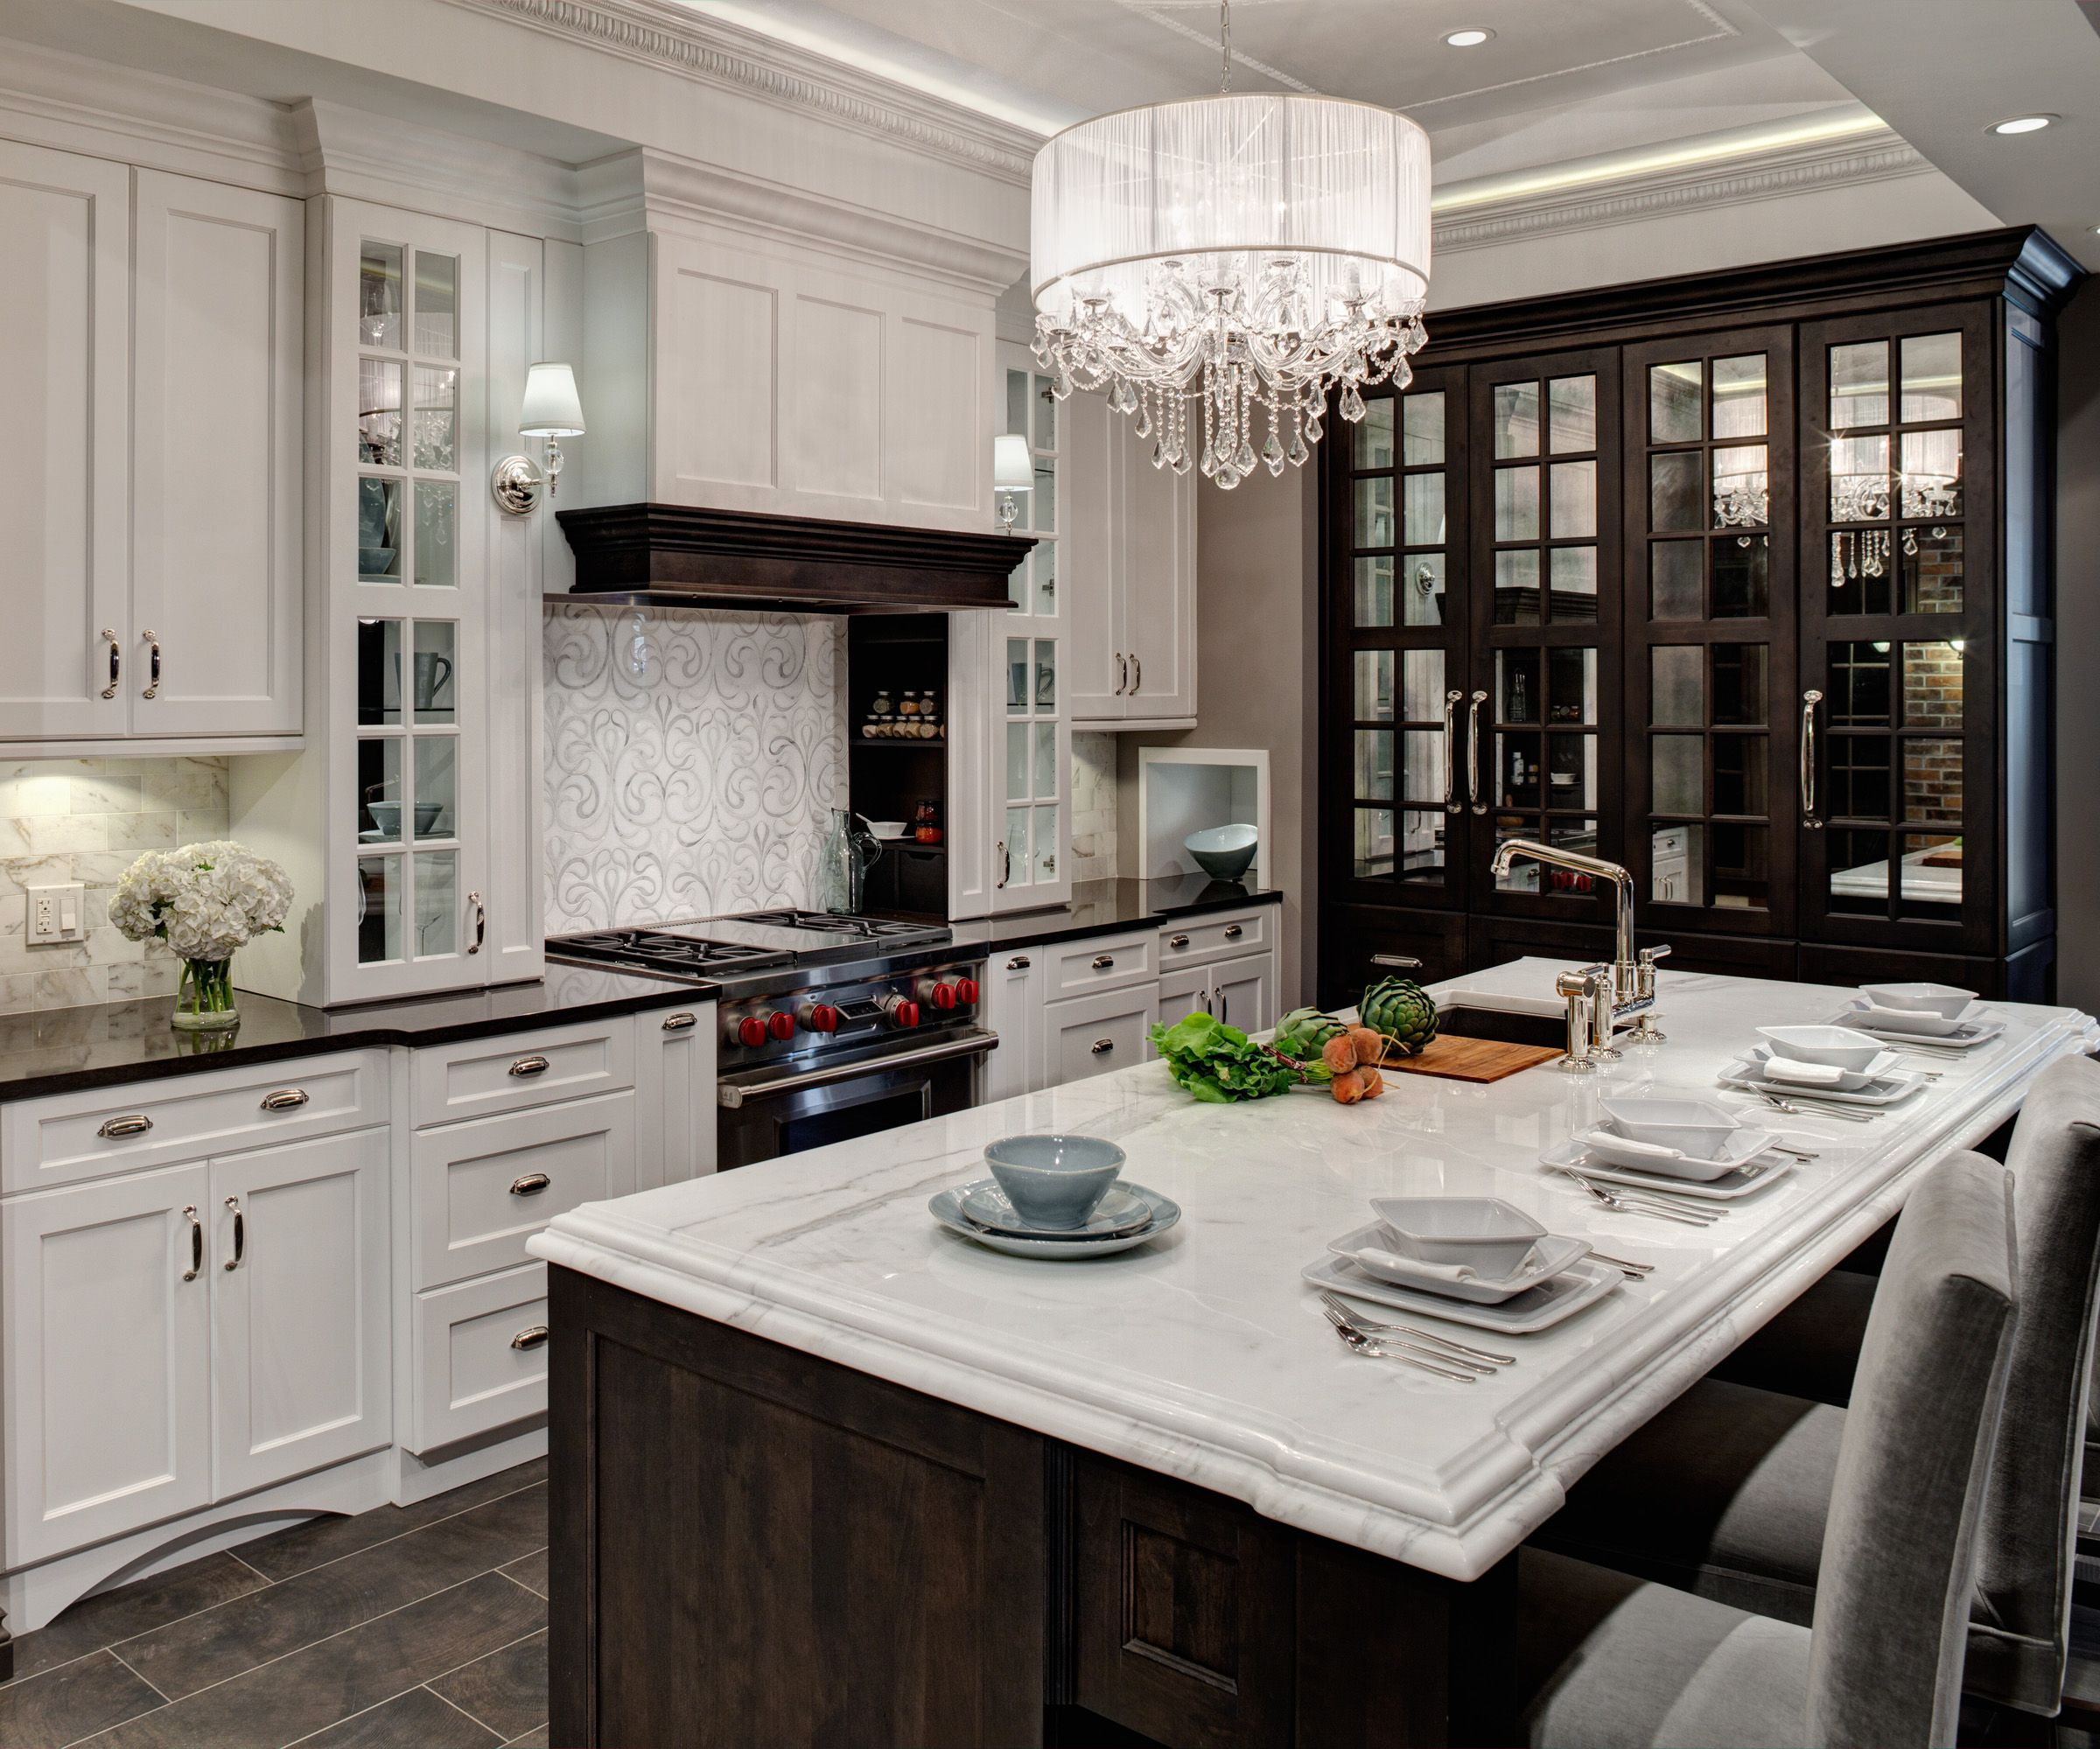 Kitchen Designer Chicago Glamorous Lincolnwood Design Showroom Kitchen Display  Kitchen Islands Inspiration Design